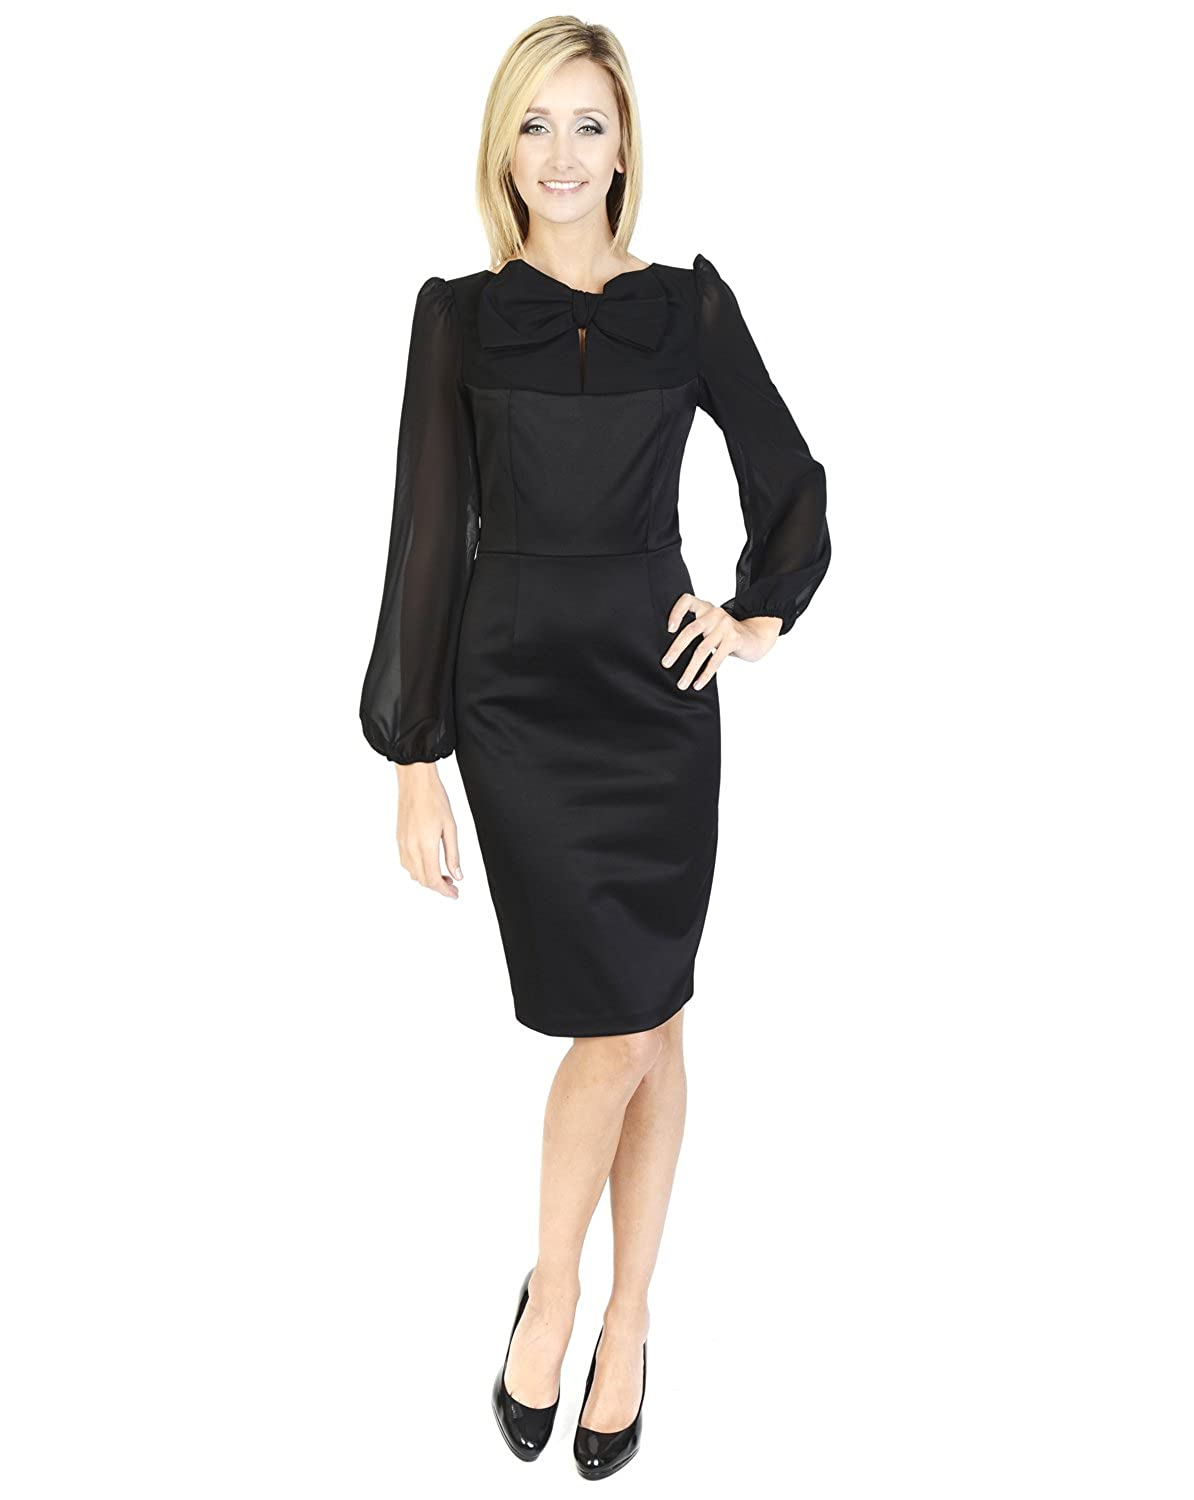 Hunters & Gatherers Midi Long sleeve little black dress Scoop neckline Party, cocktail Bow Front Black Dress